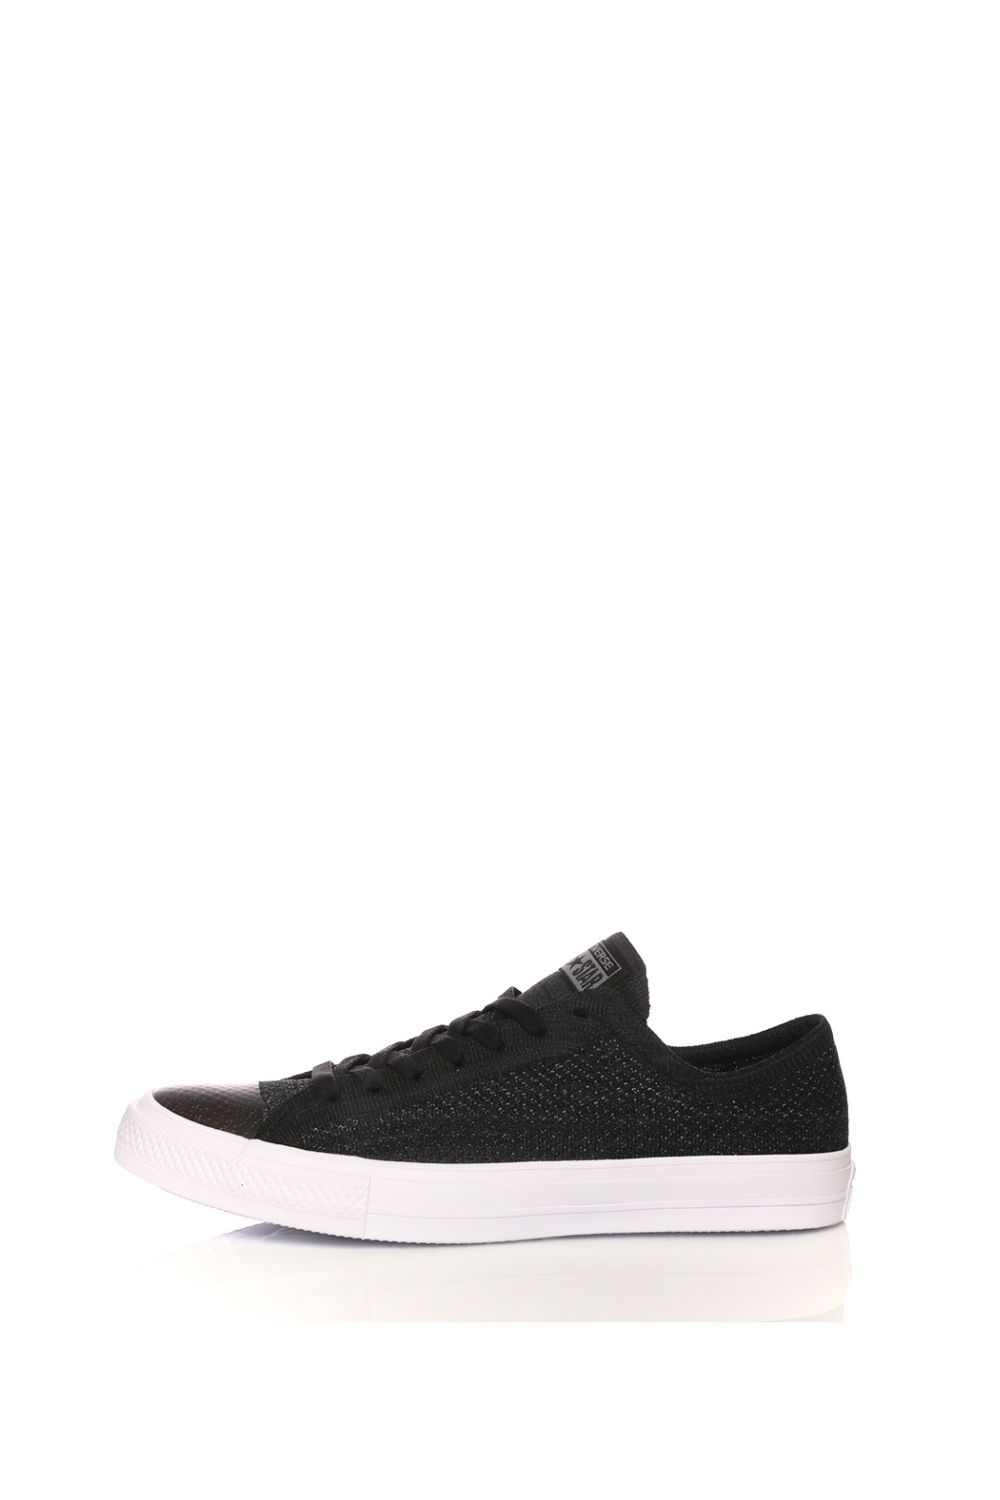 CONVERSE – Unisex sneakers CONVERSE Chuck Taylor All Star OX Flykn μαύρα